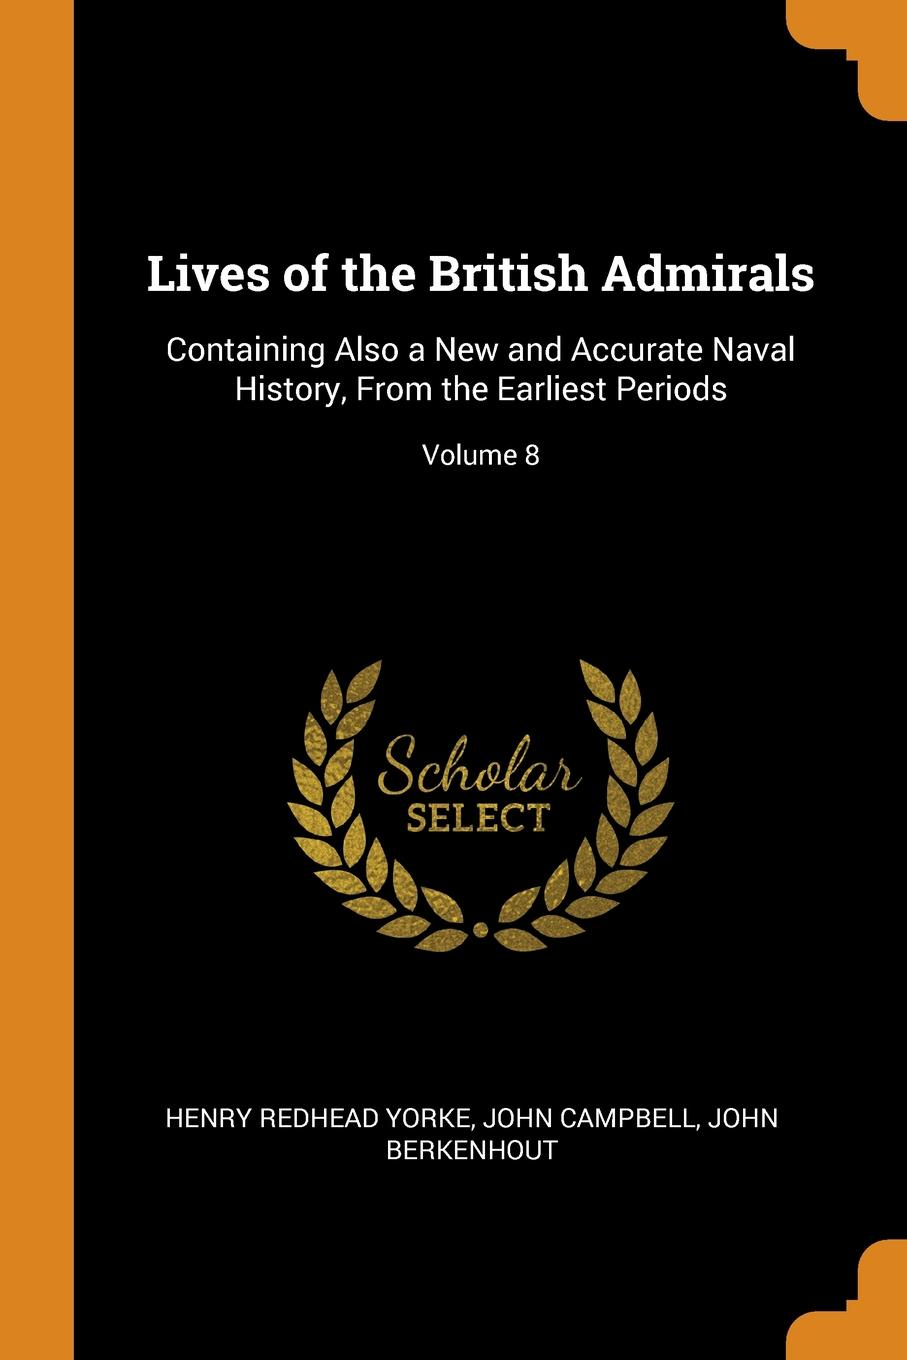 Henry Redhead Yorke, John Campbell, John Berkenhout Lives of the British Admirals. Containing Also a New and Accurate Naval History, From the Earliest Periods; Volume 8